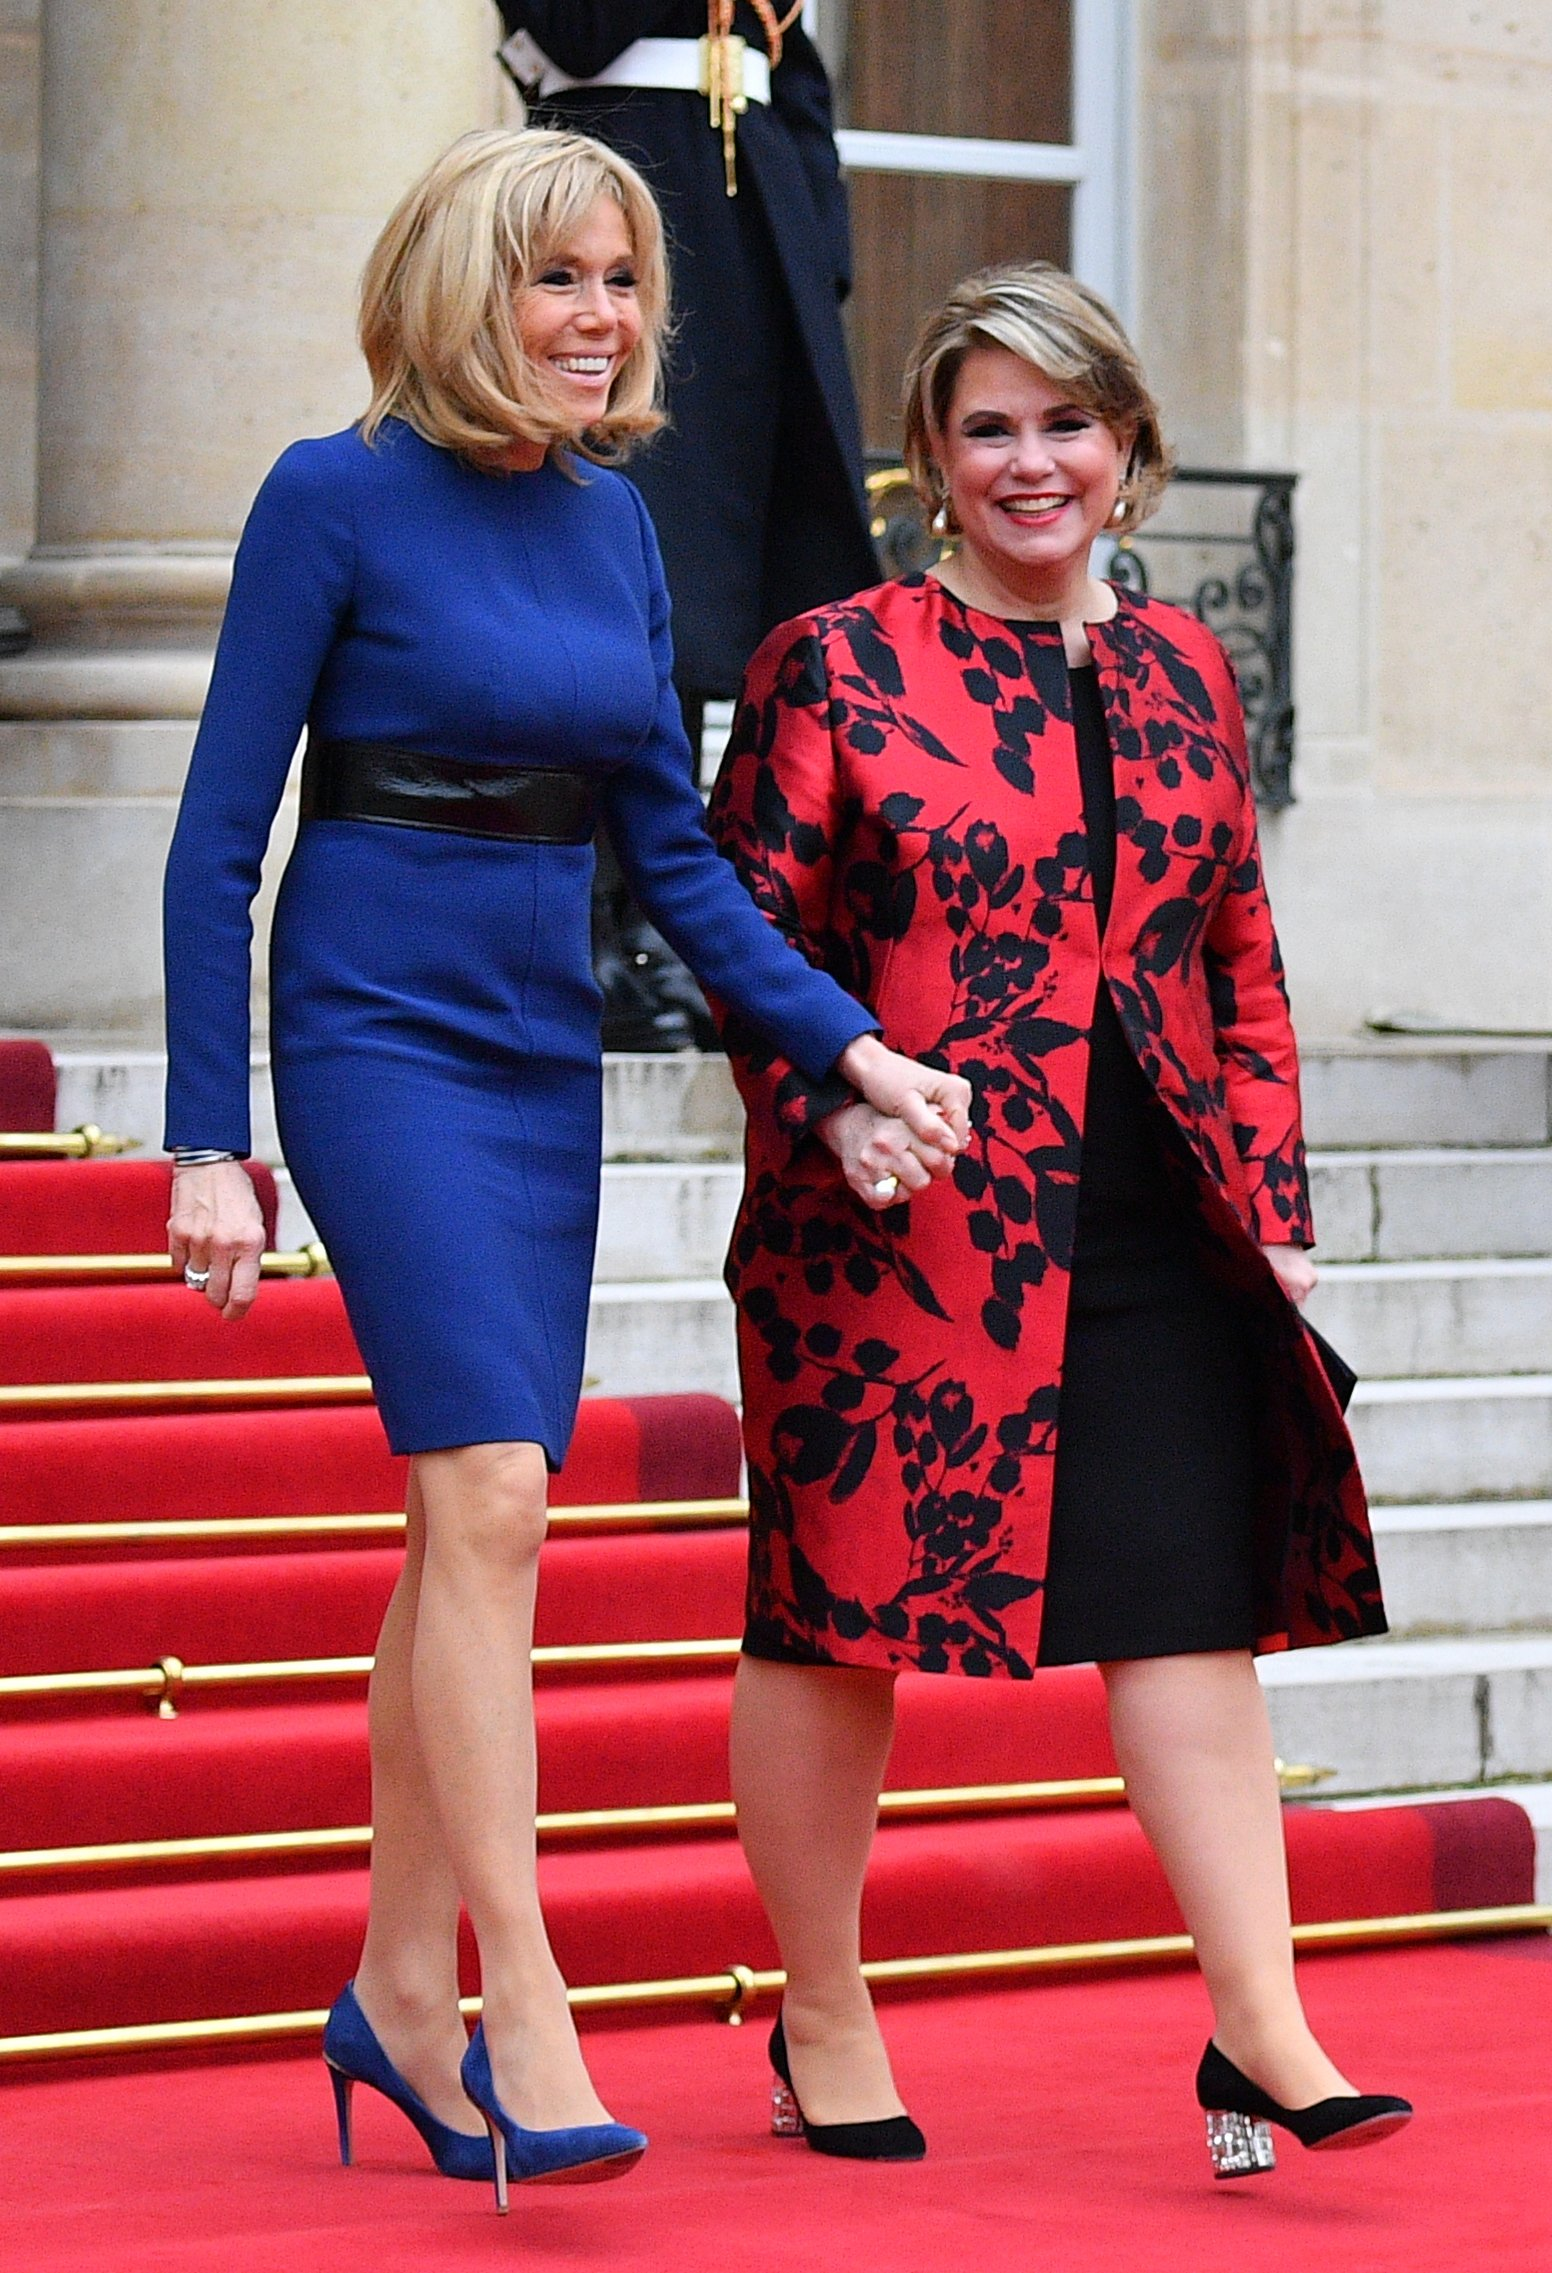 Grand Duchess Maria Teresa and Grand Duke Henri of Luxembourg, French President Emmanuel Macron and Brigitte Macron pose in the courtyard of Elysee Palace in Paris, France,on March 19, 2018., Image: 366384845, License: Rights-managed, Restrictions: , Model Release: no, Credit line: Profimedia, Abaca